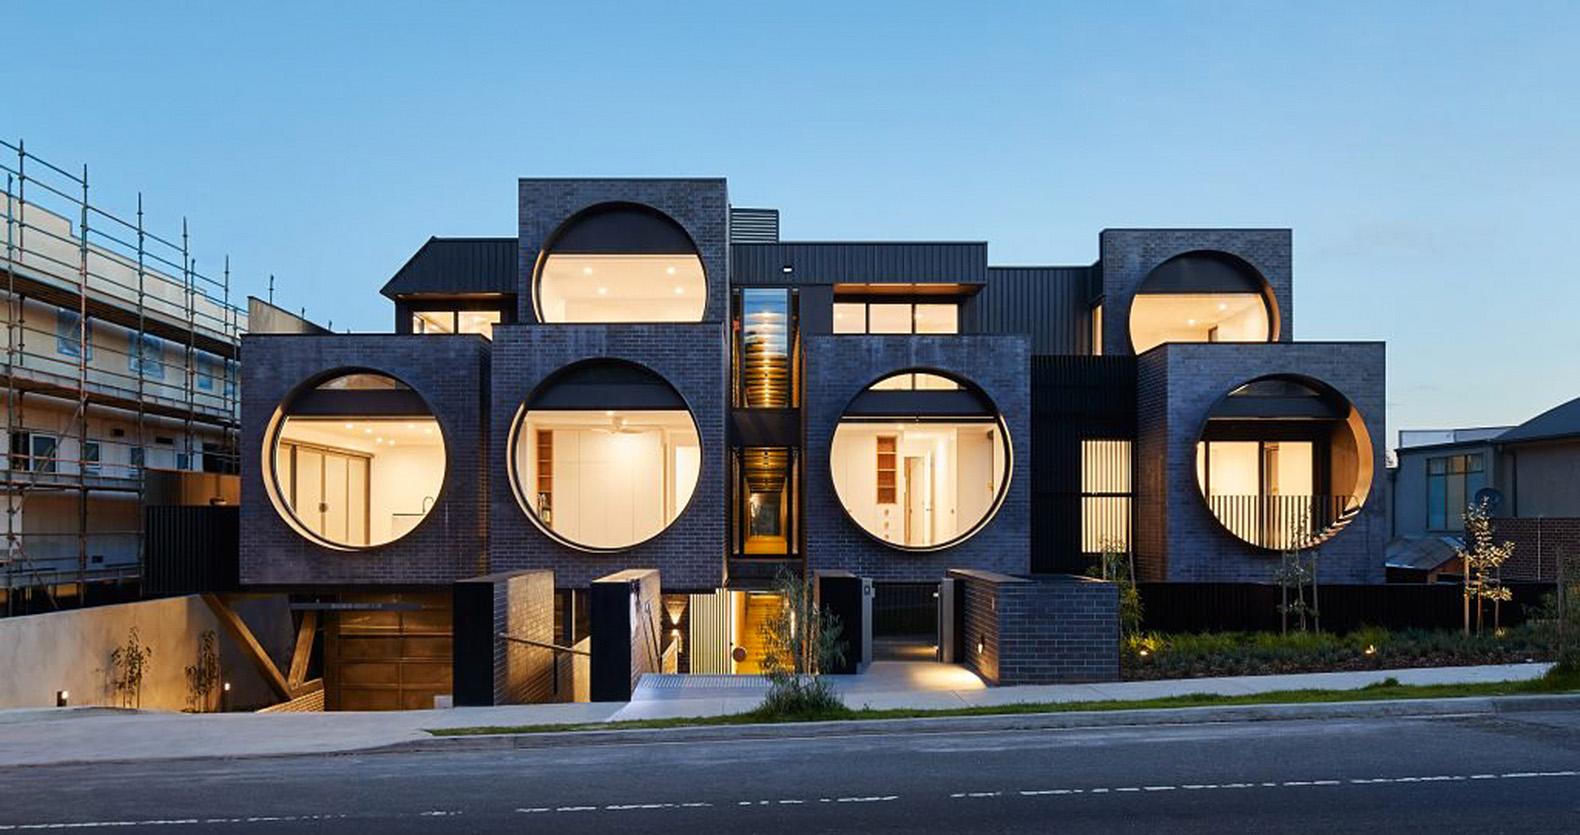 Huge Circular Windows Flood The Interior Of This Funky Apartment Block In  Melbourne With Natural Light. BKK Architects Designed The Cirqua Apartments  As A ...